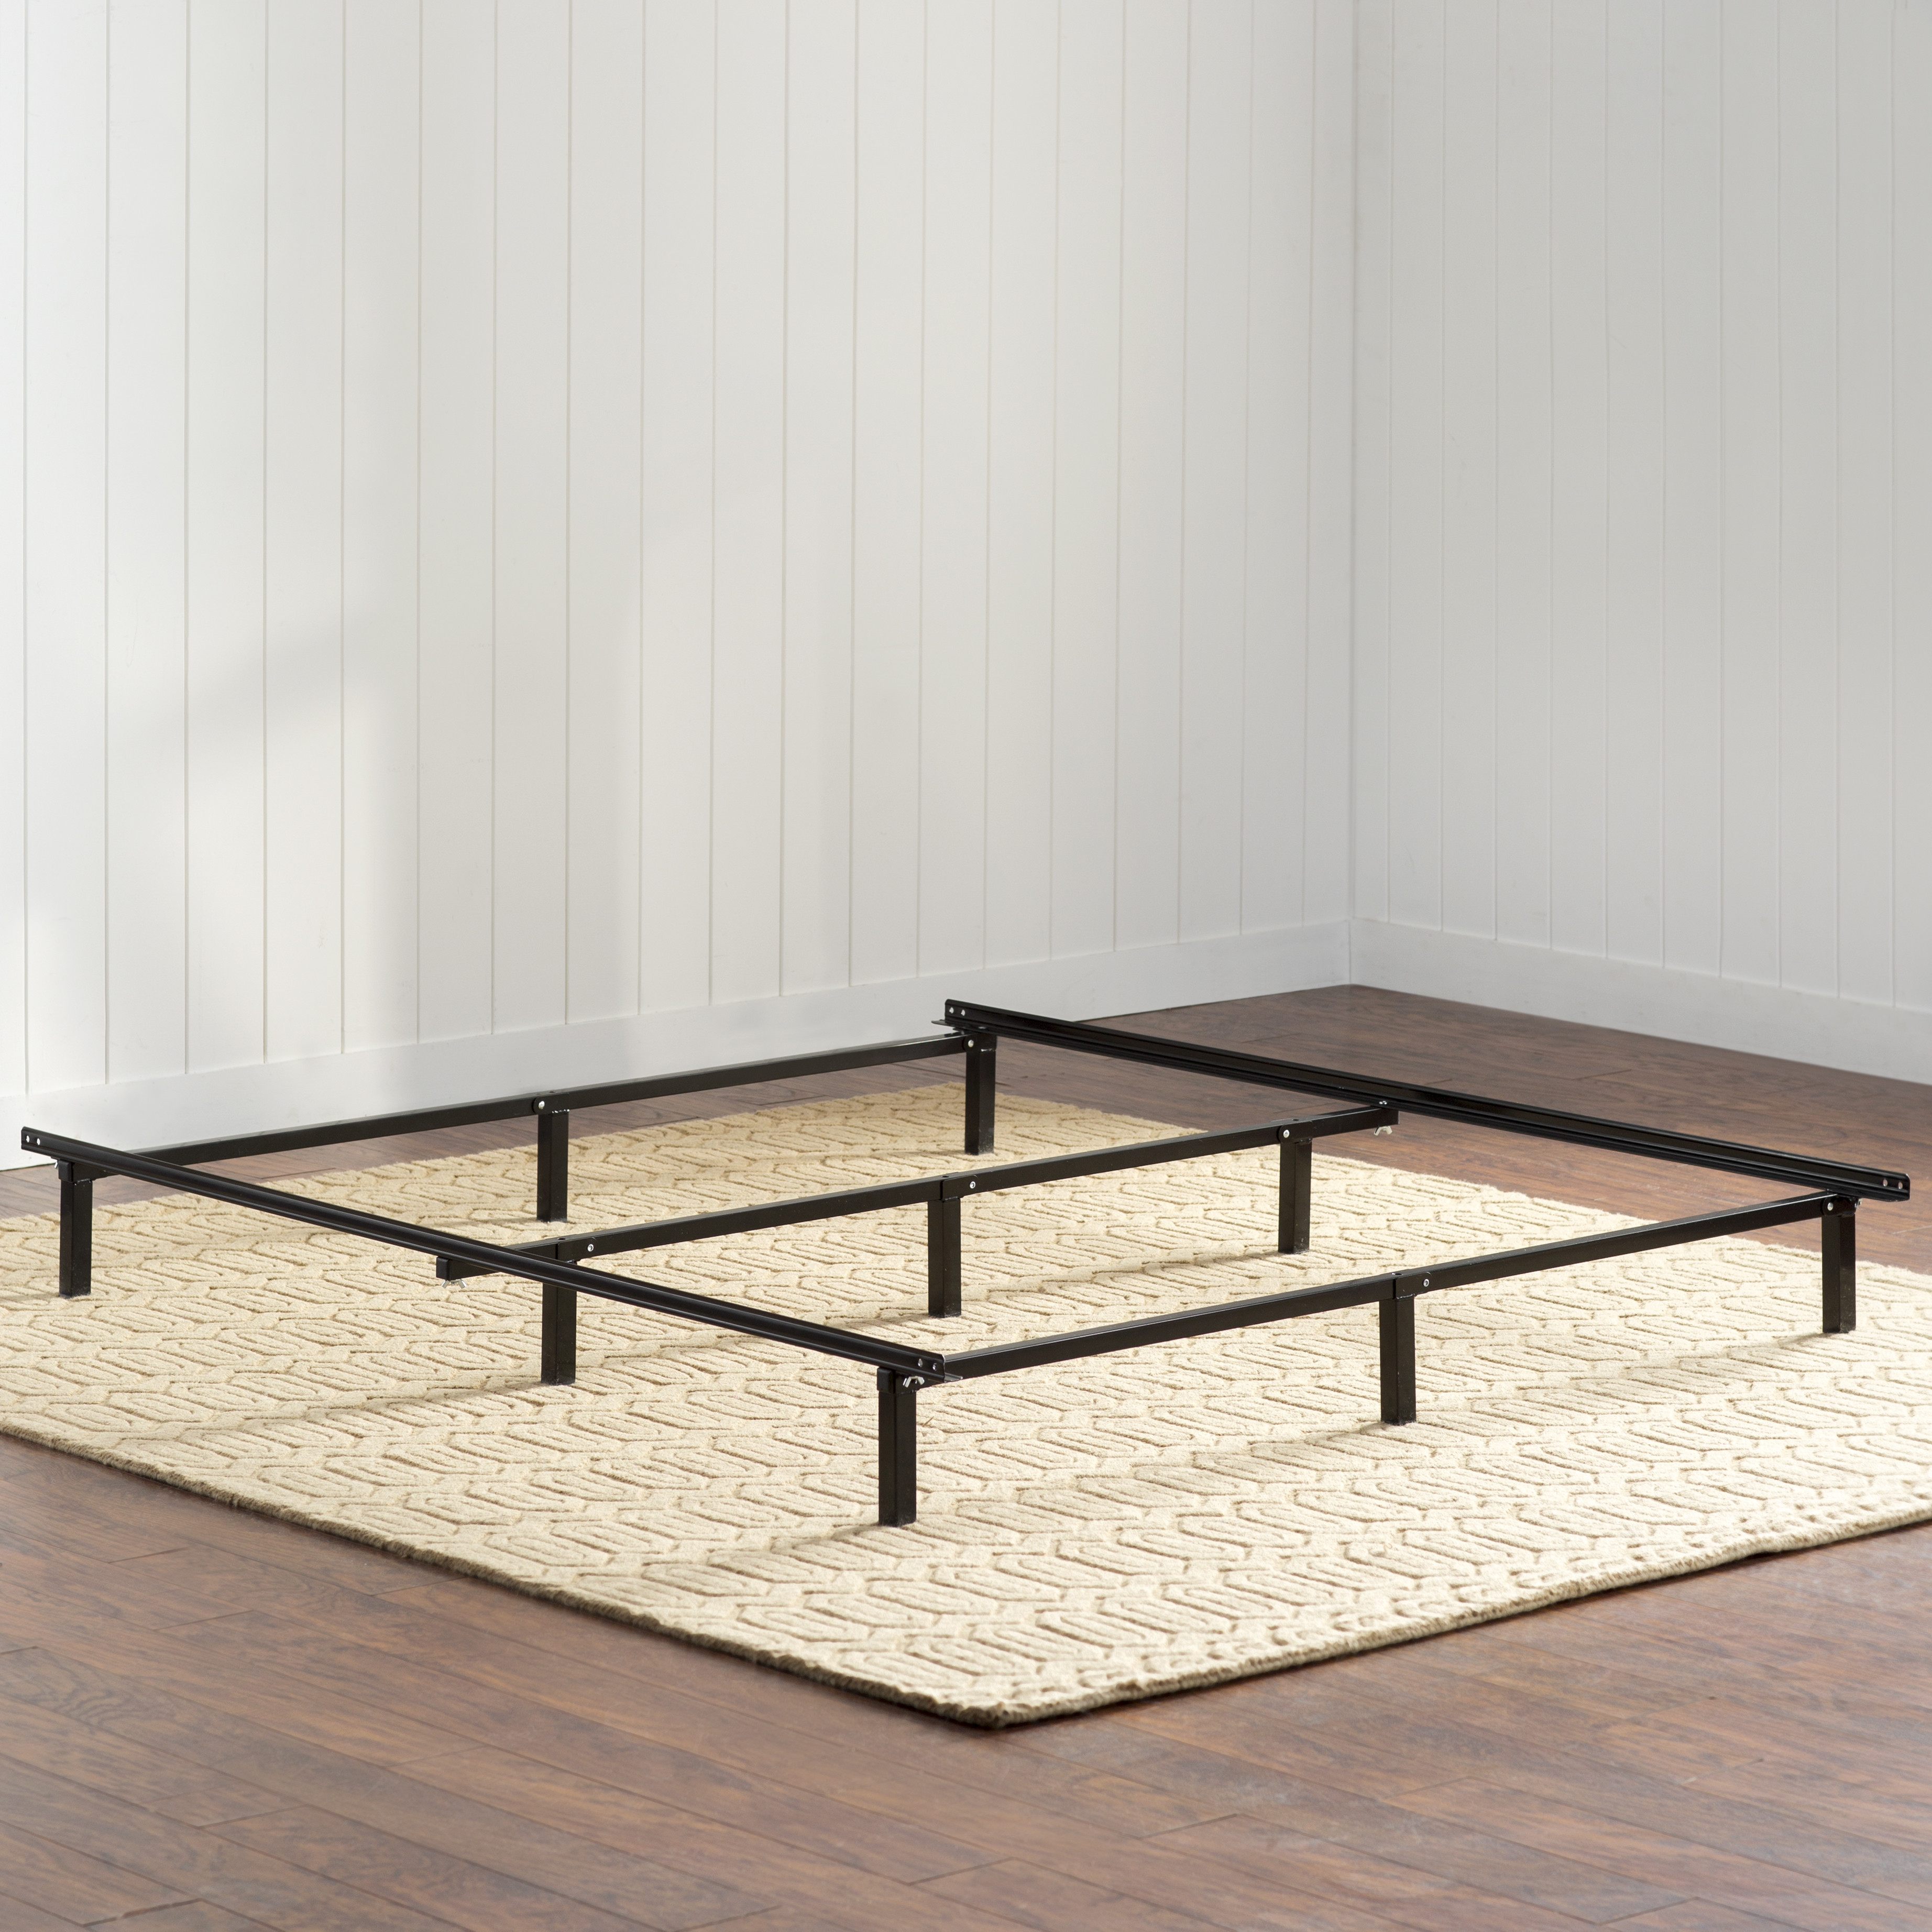 Extra High Metal Bed Frames